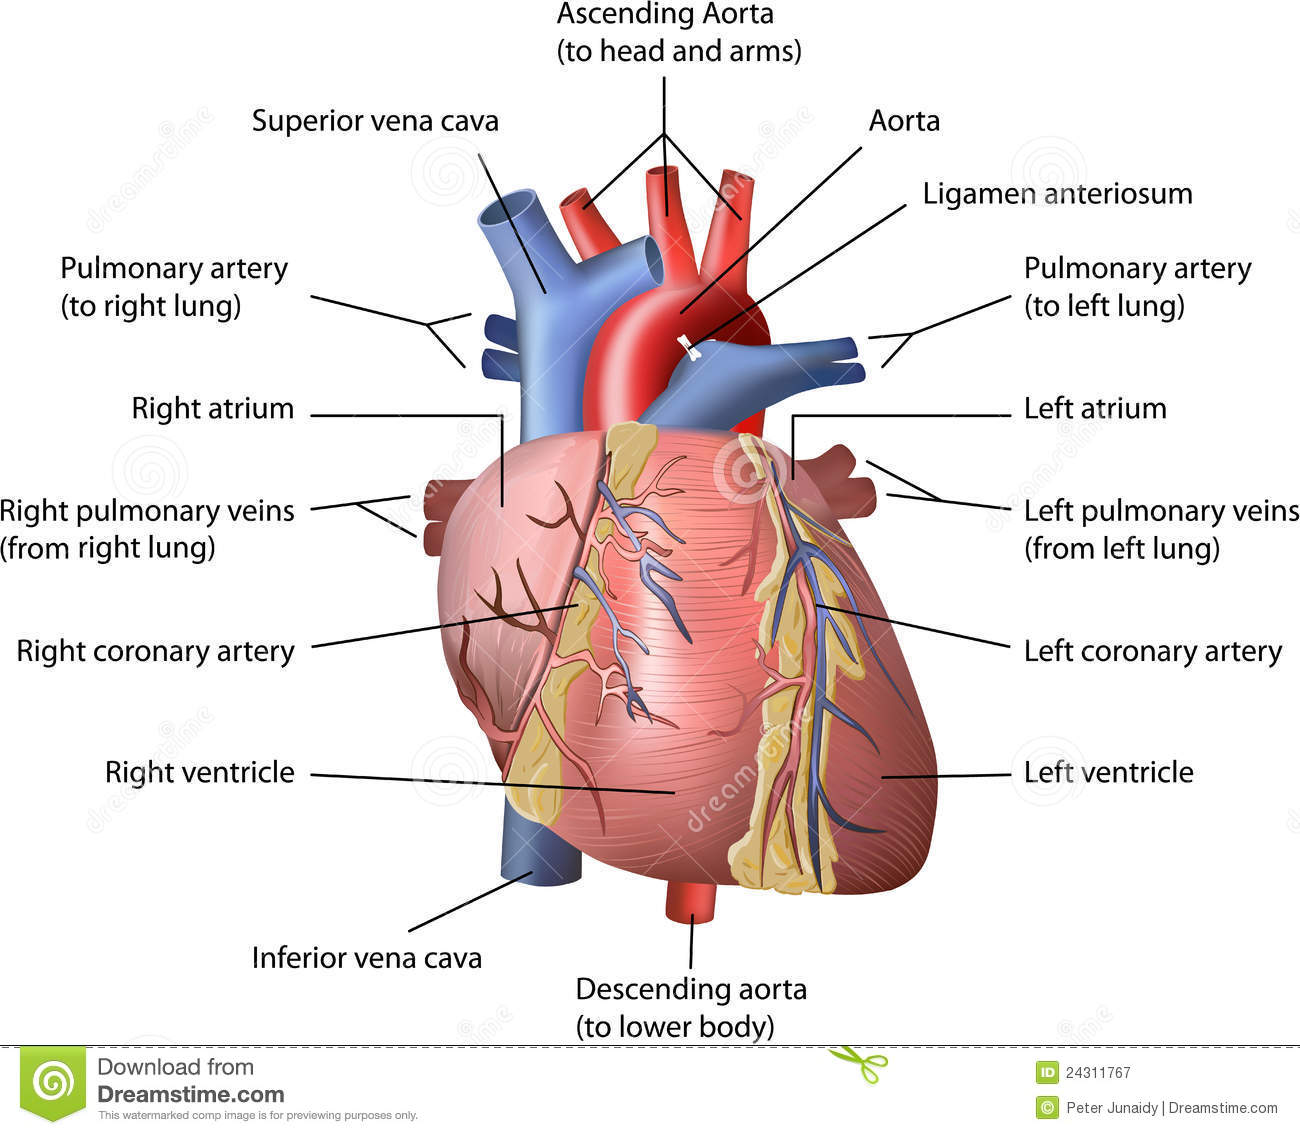 Cuore Umano moreover Gray additionally The Cervical Spinal Cord And Origin Of The Anterior Spinal Artery The Anterior Spinal in addition Transgastric Long Axis View Tg Lax To Assess The Aortic Valve And The Left besides Diagram Of Heart. on ascending aorta diagram